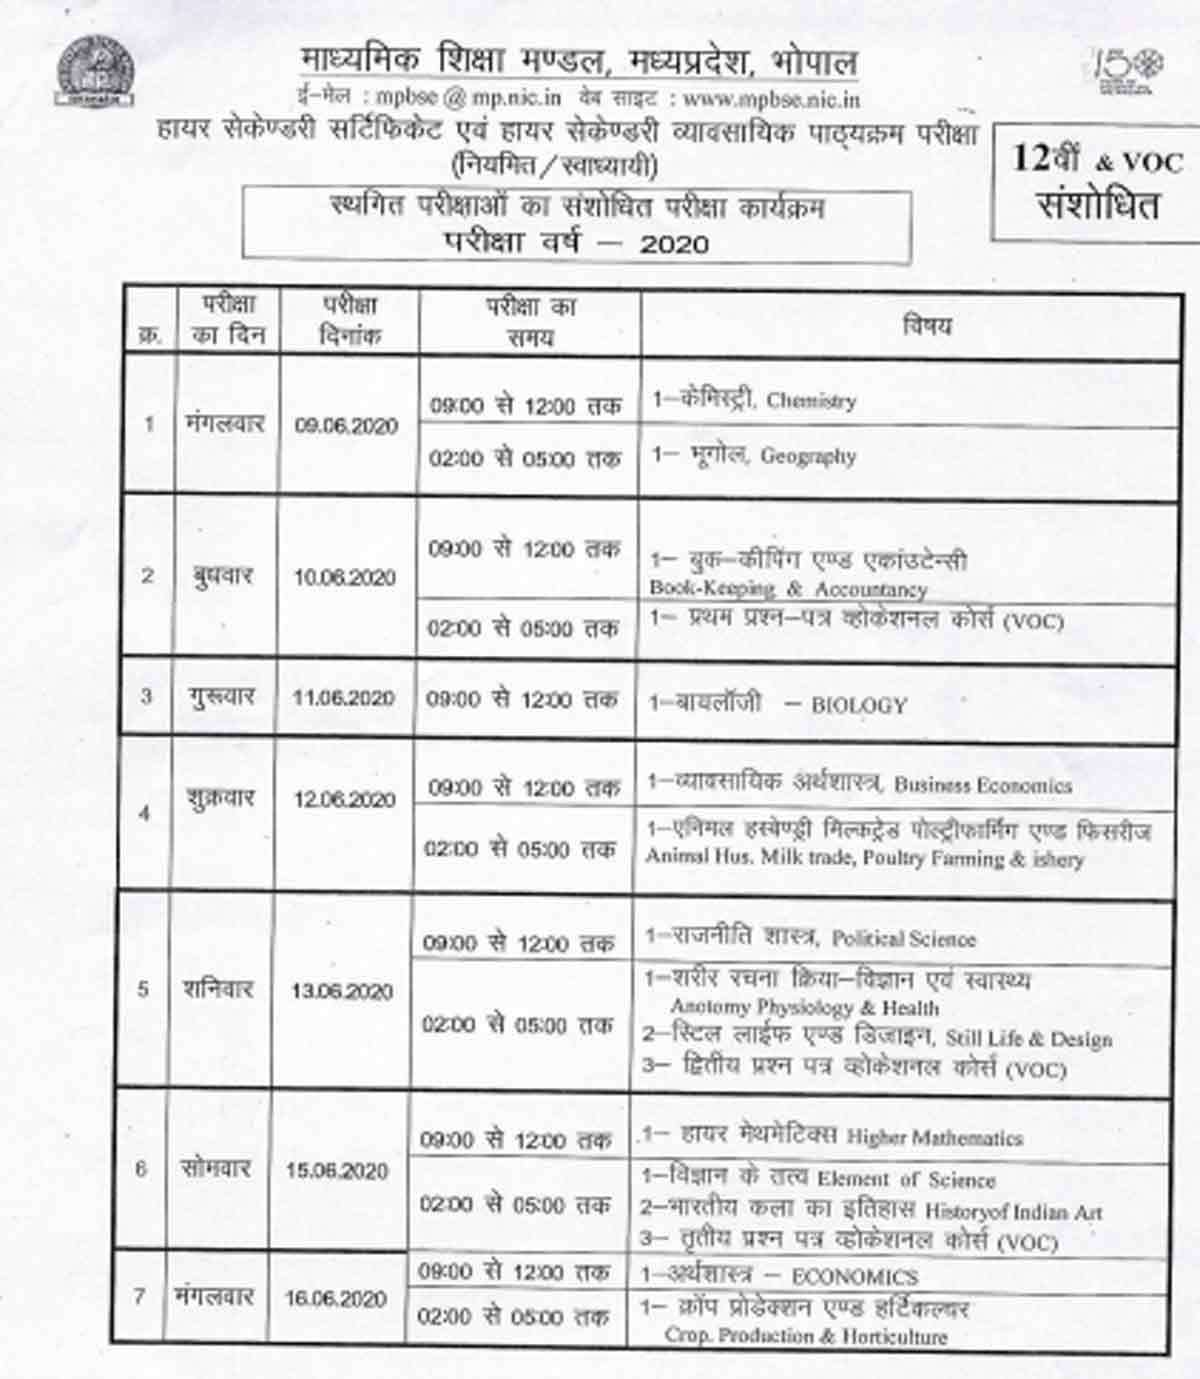 MP Board Class 12th revised timetable